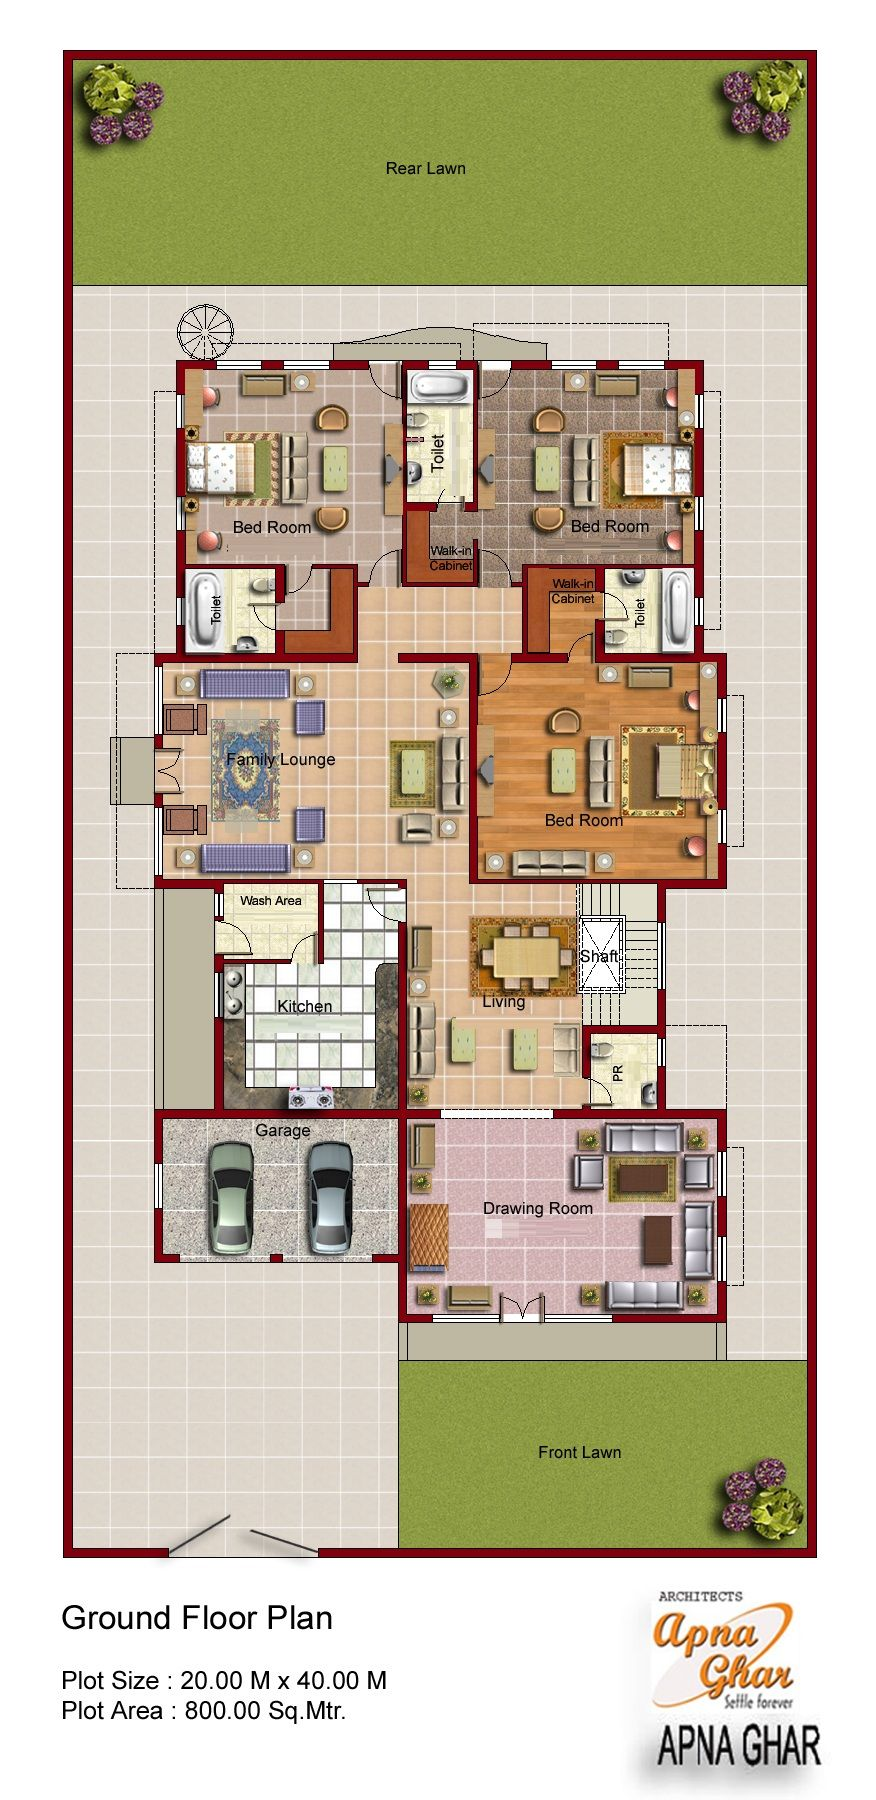 Pin By Djoned Budiono On Architecture Duplex House Plans Modern House Floor Plans My House Plans